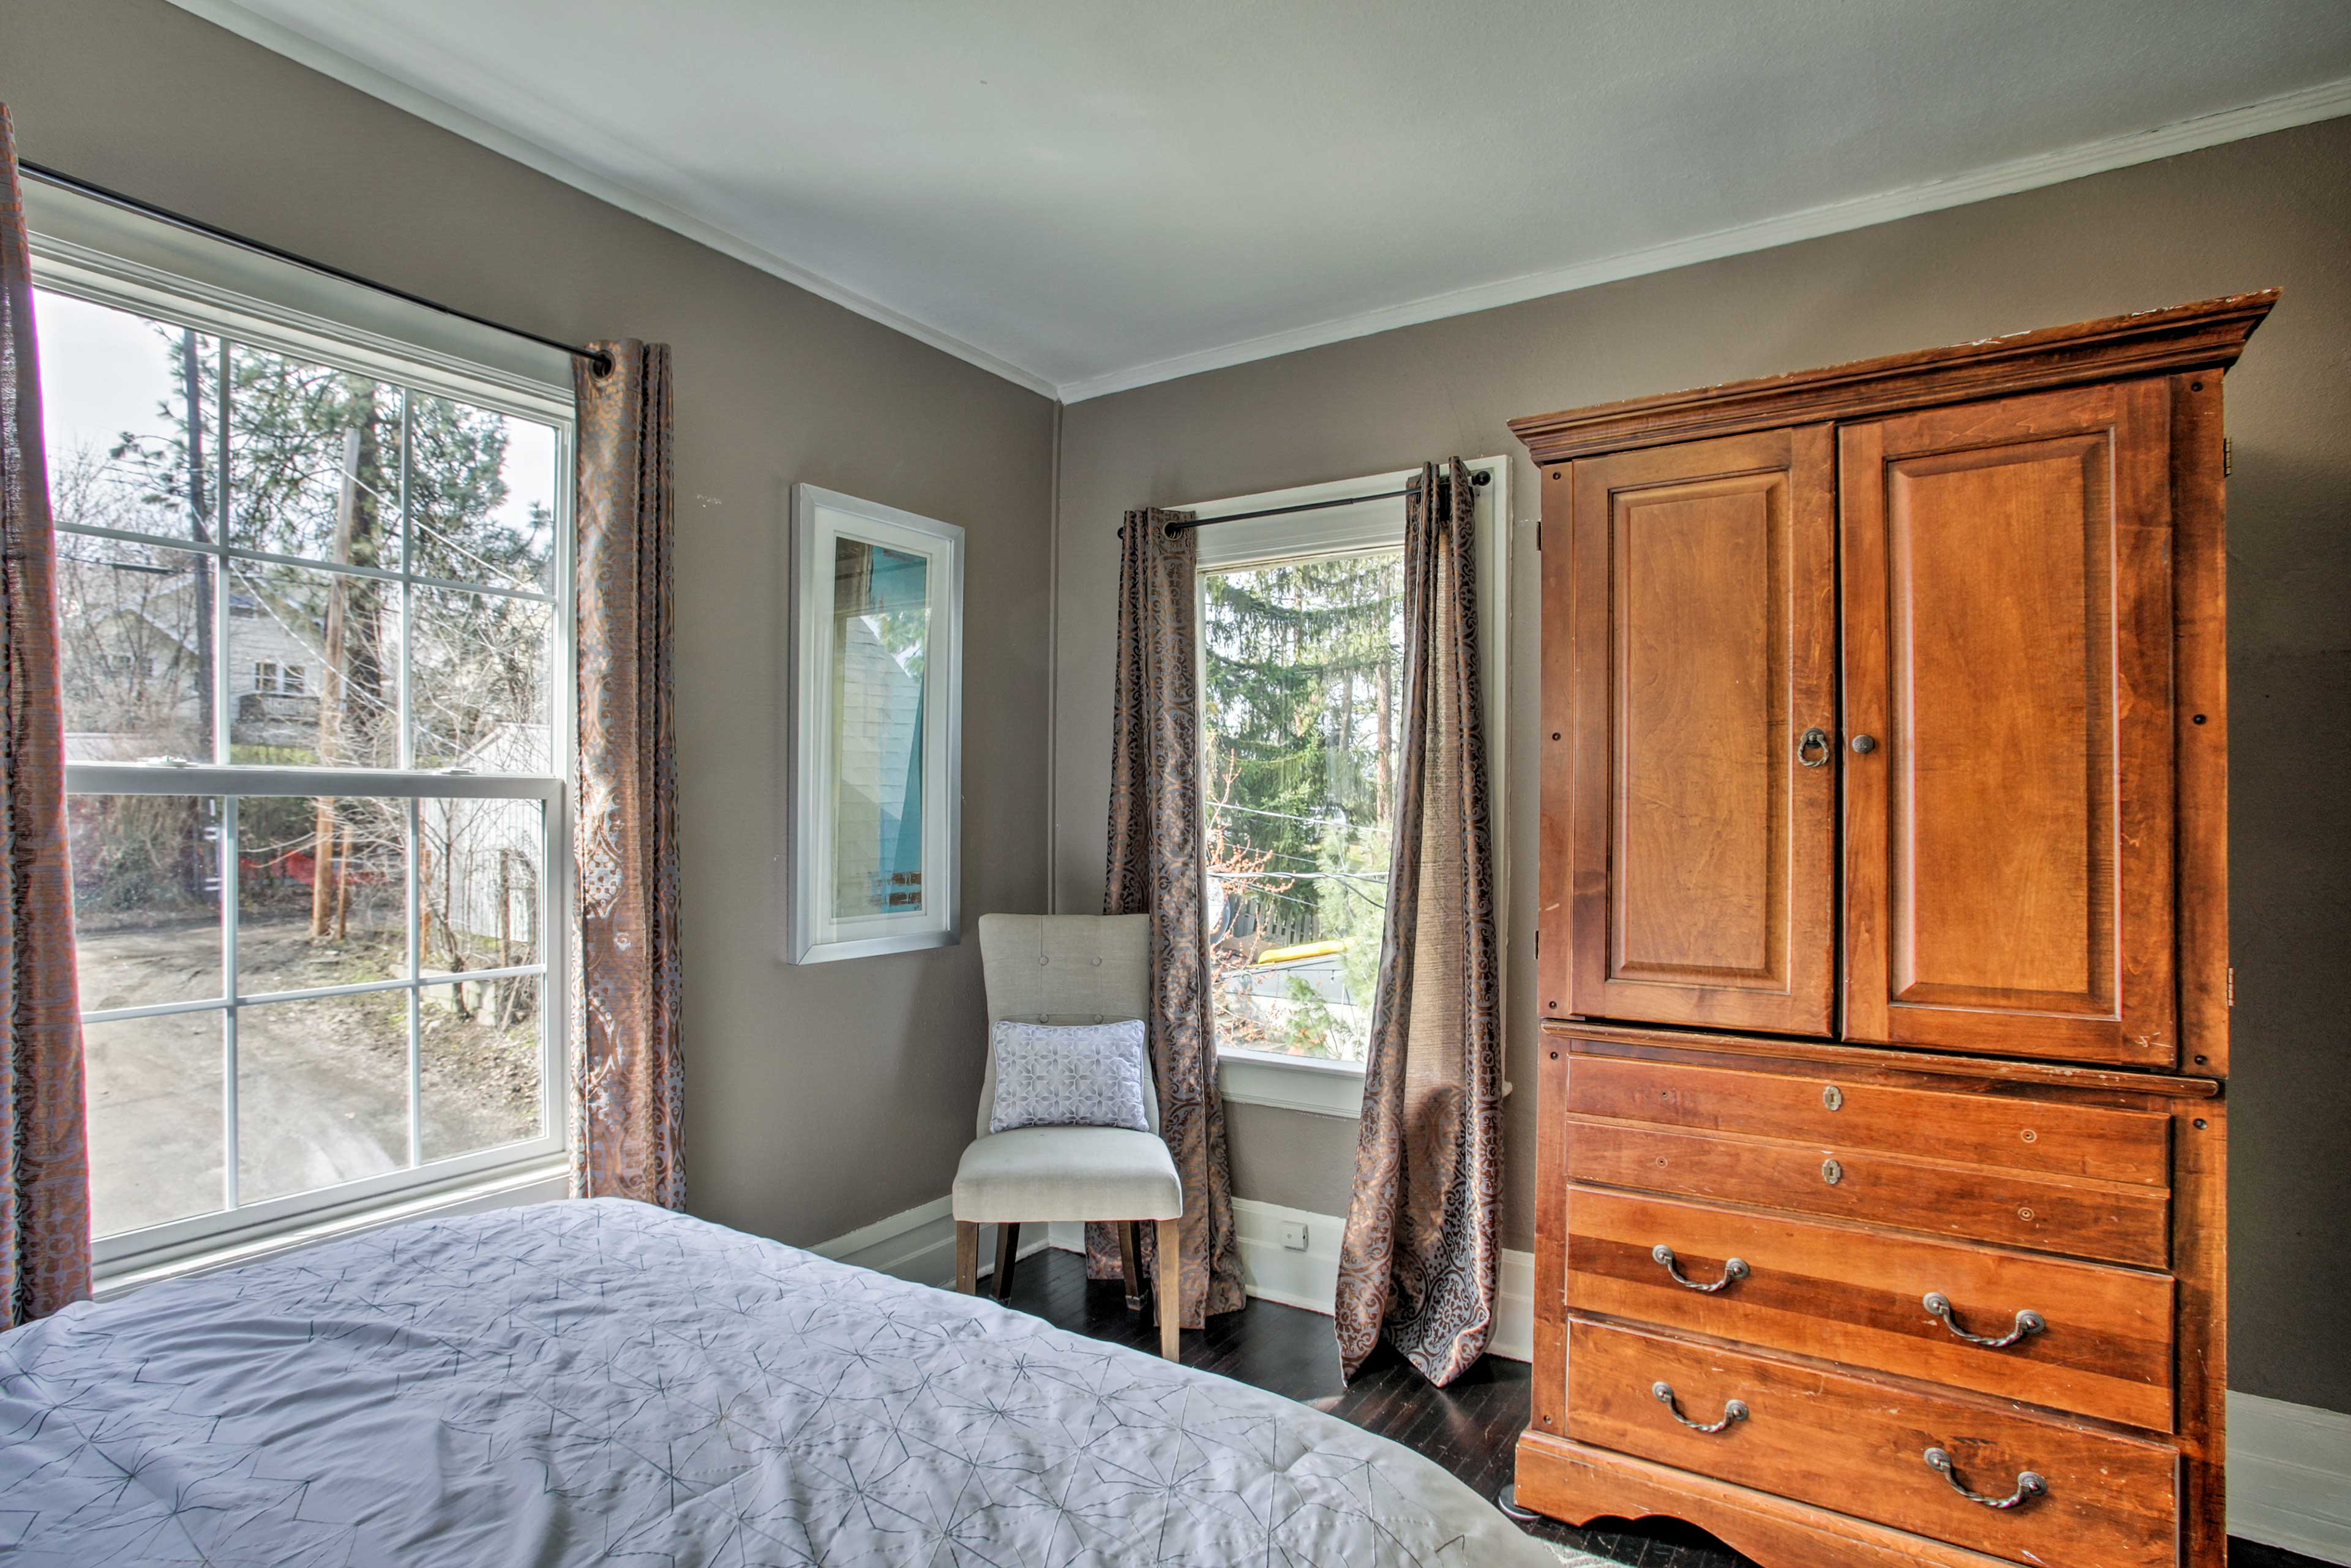 This room is outfitted with a queen-sized bed.